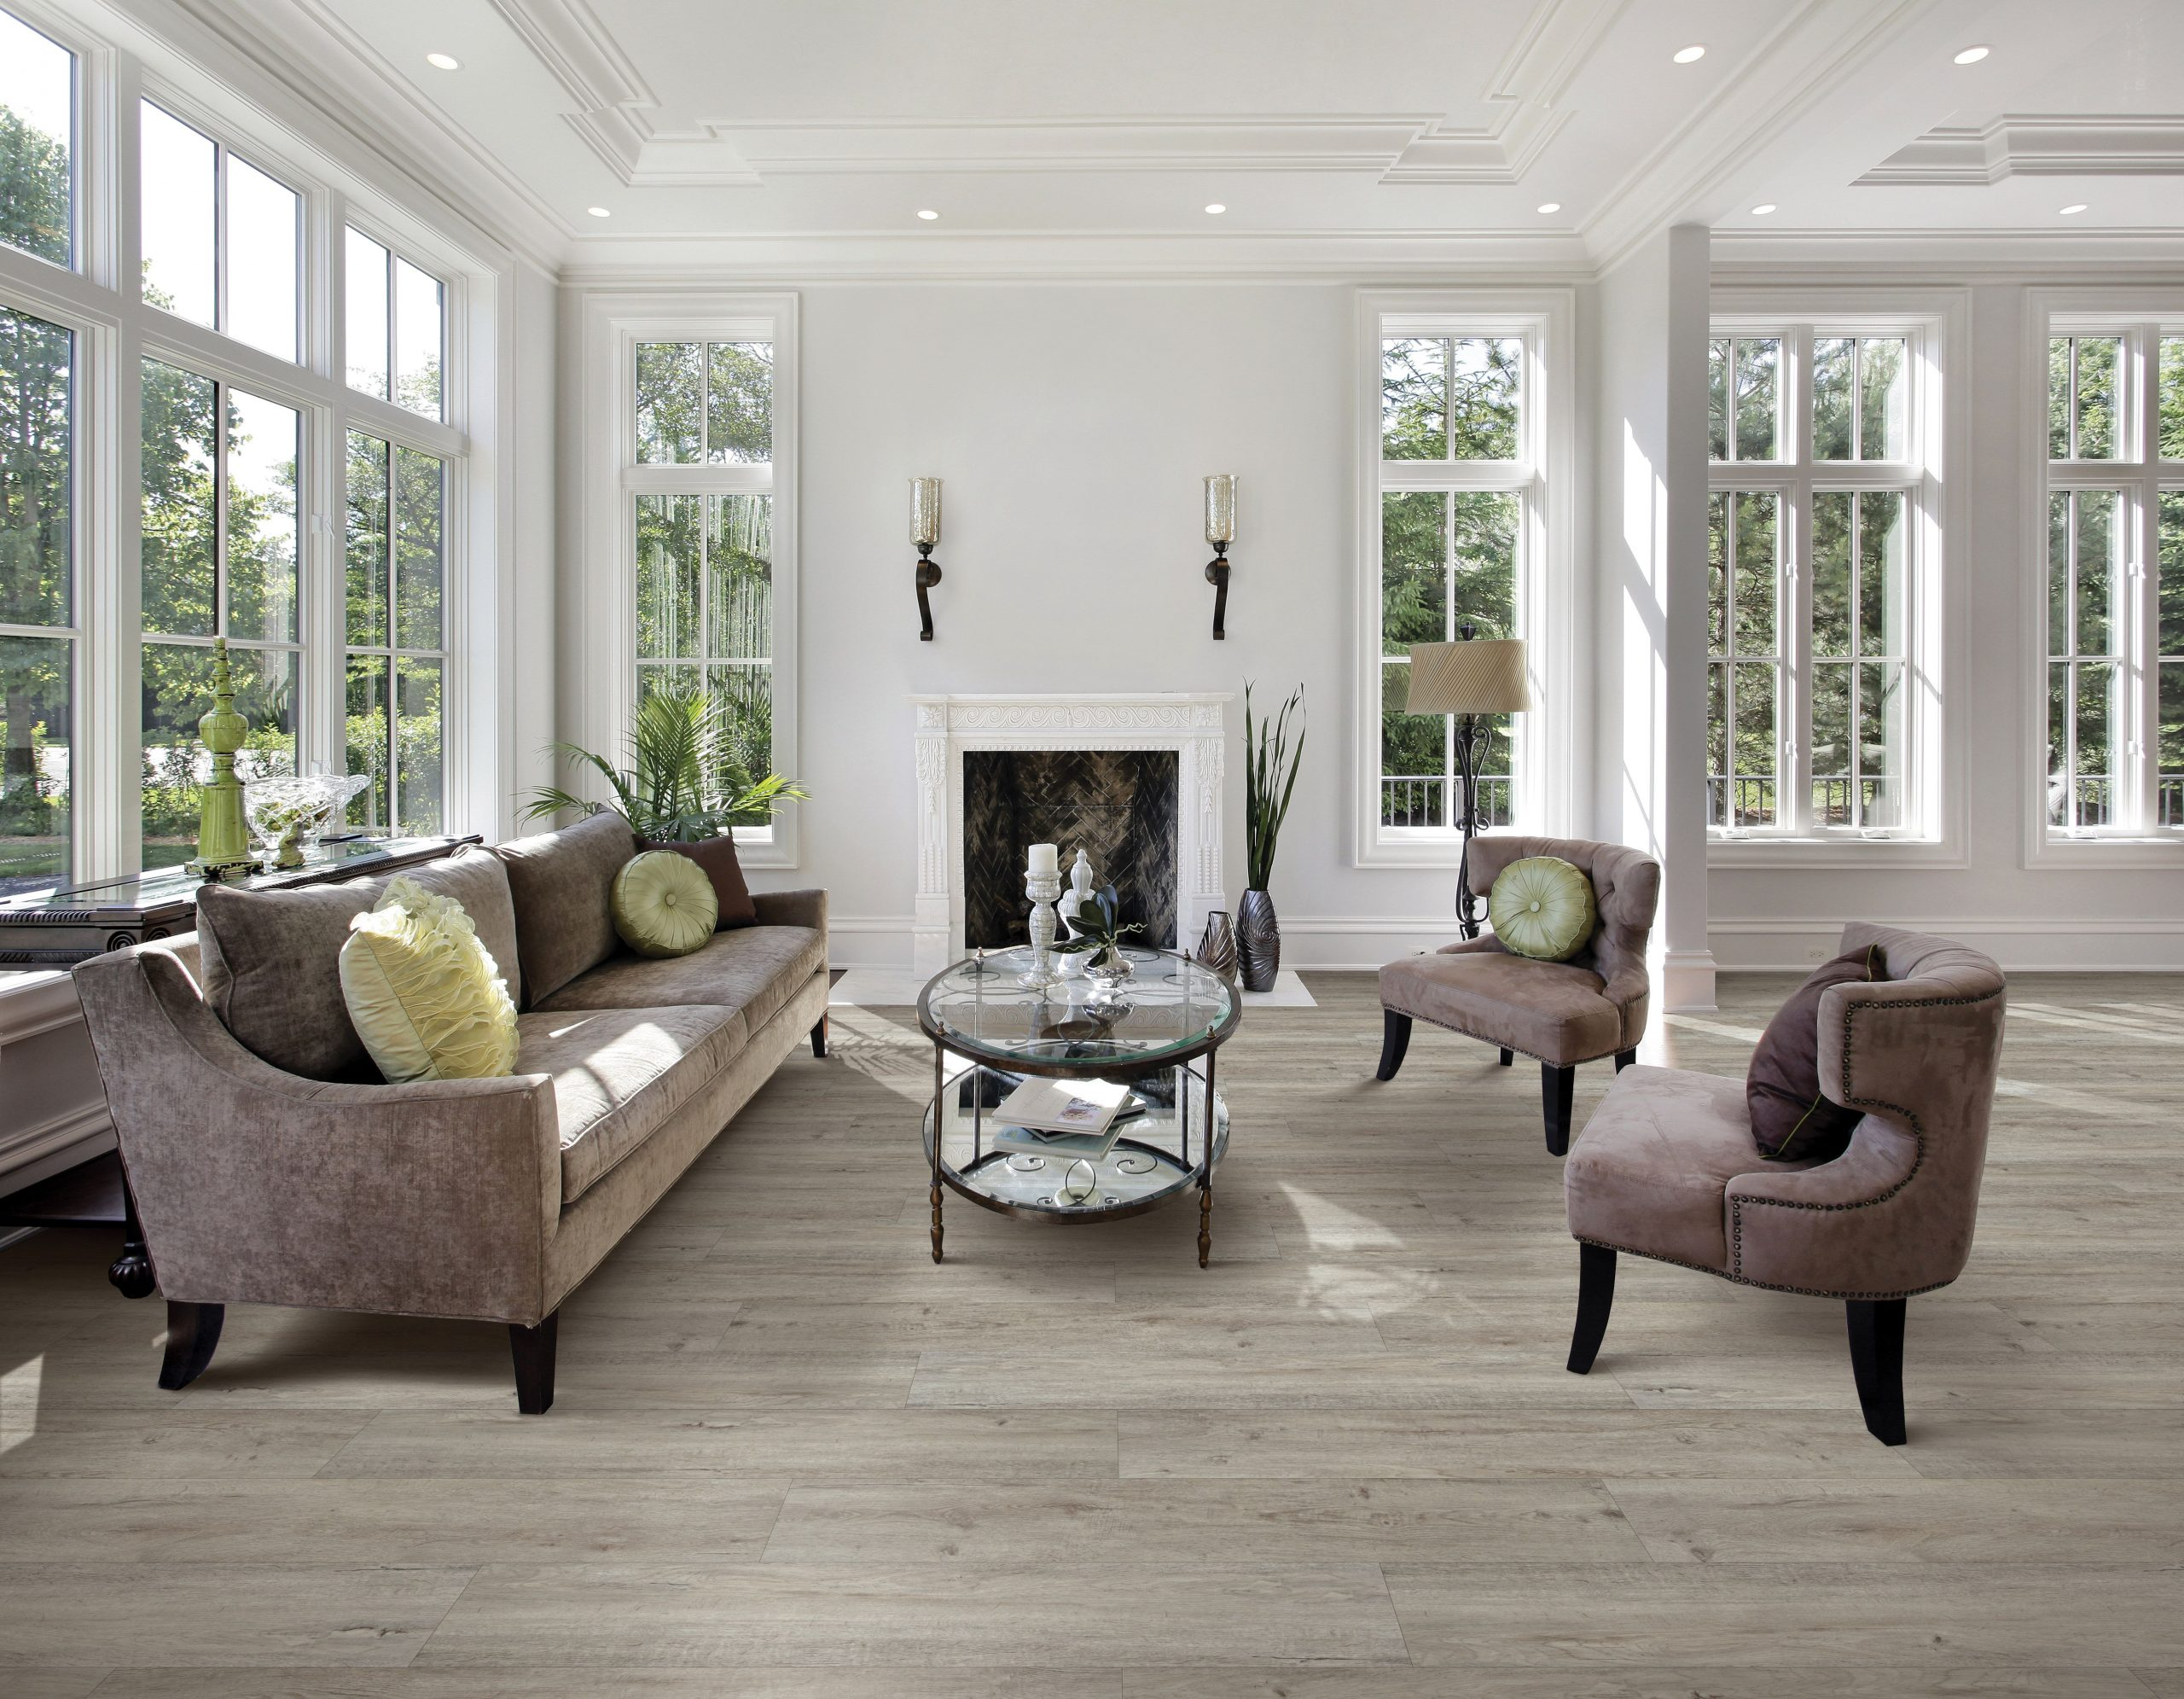 classic sunroom design gray tile floors with white walls and trim lots of glass white fireplace sunroom builder nj